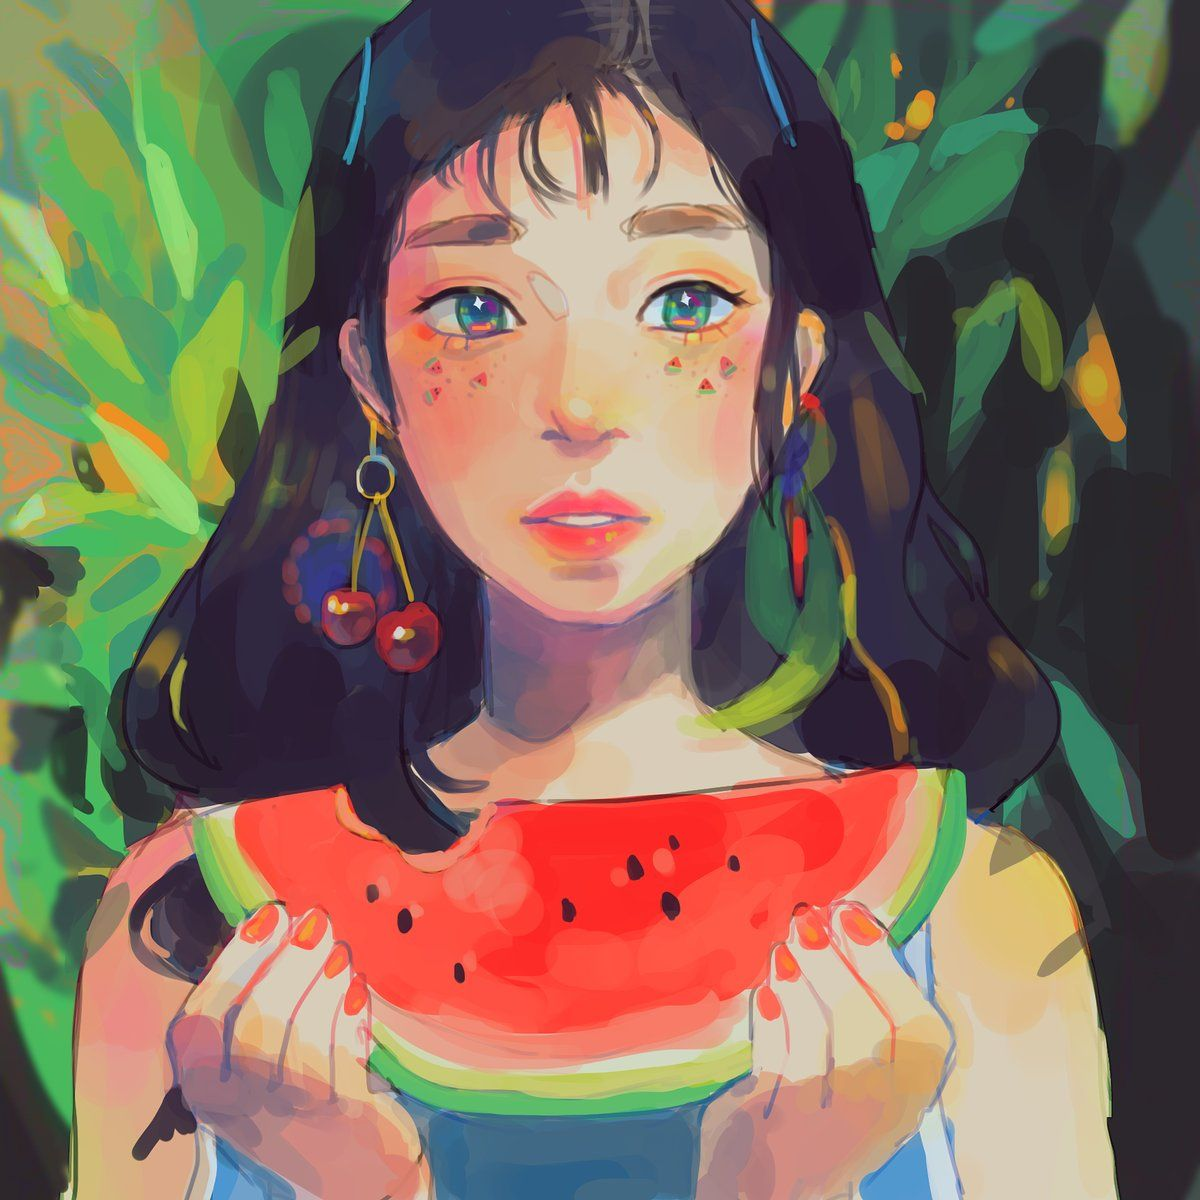 Fan Art Of Irene Of Red Velvet From Their